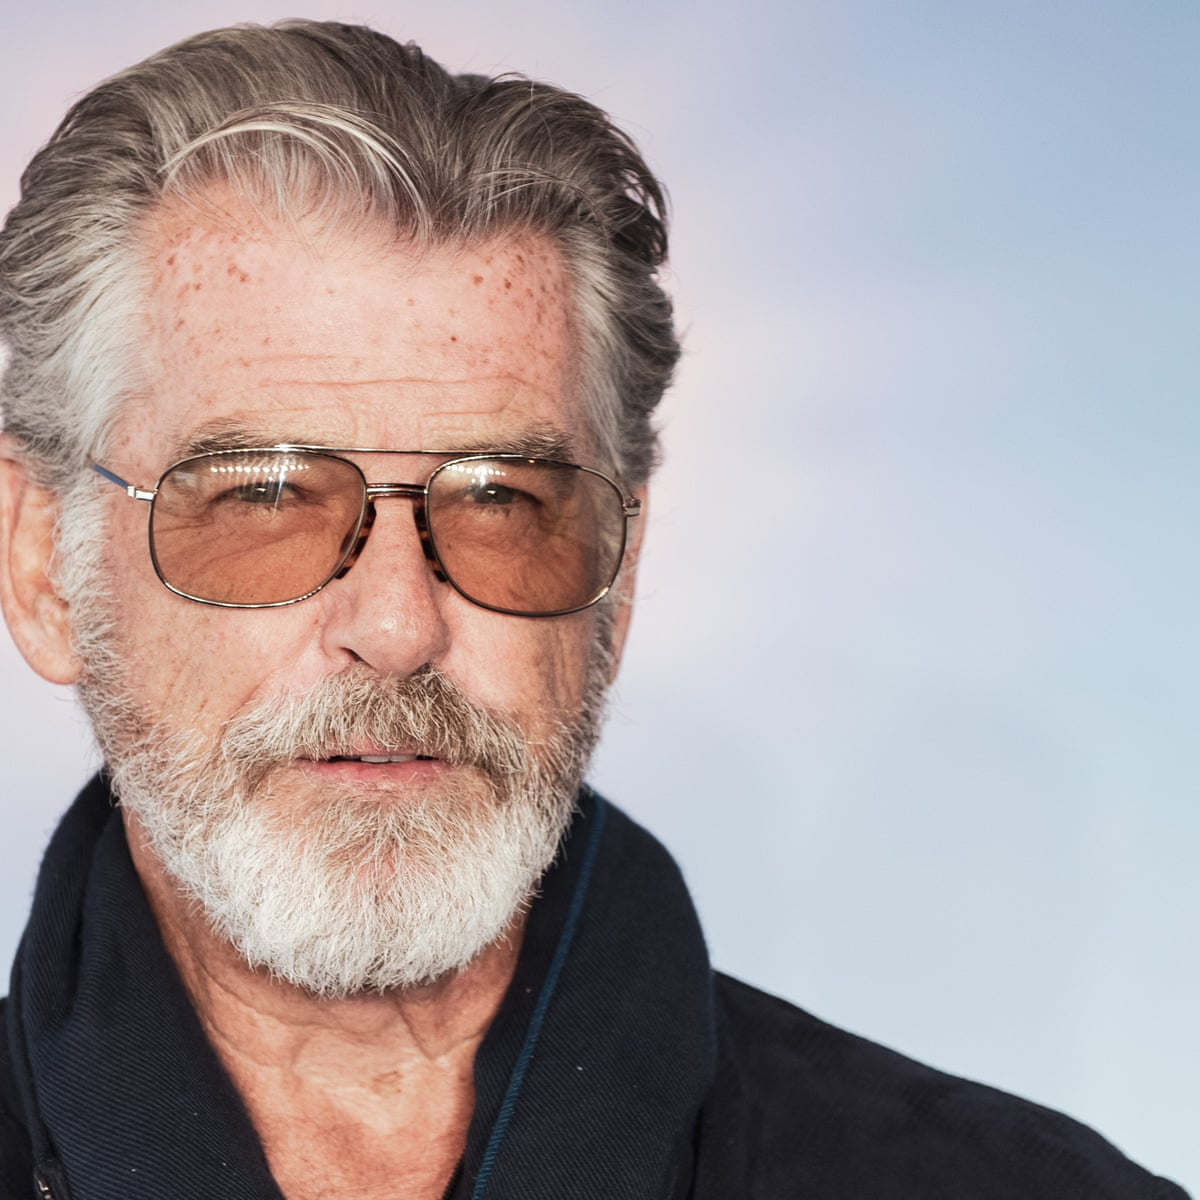 I don't let regret in': Pierce Brosnan on love, loss and his life after Bond | Pierce Brosnan | The Guardian